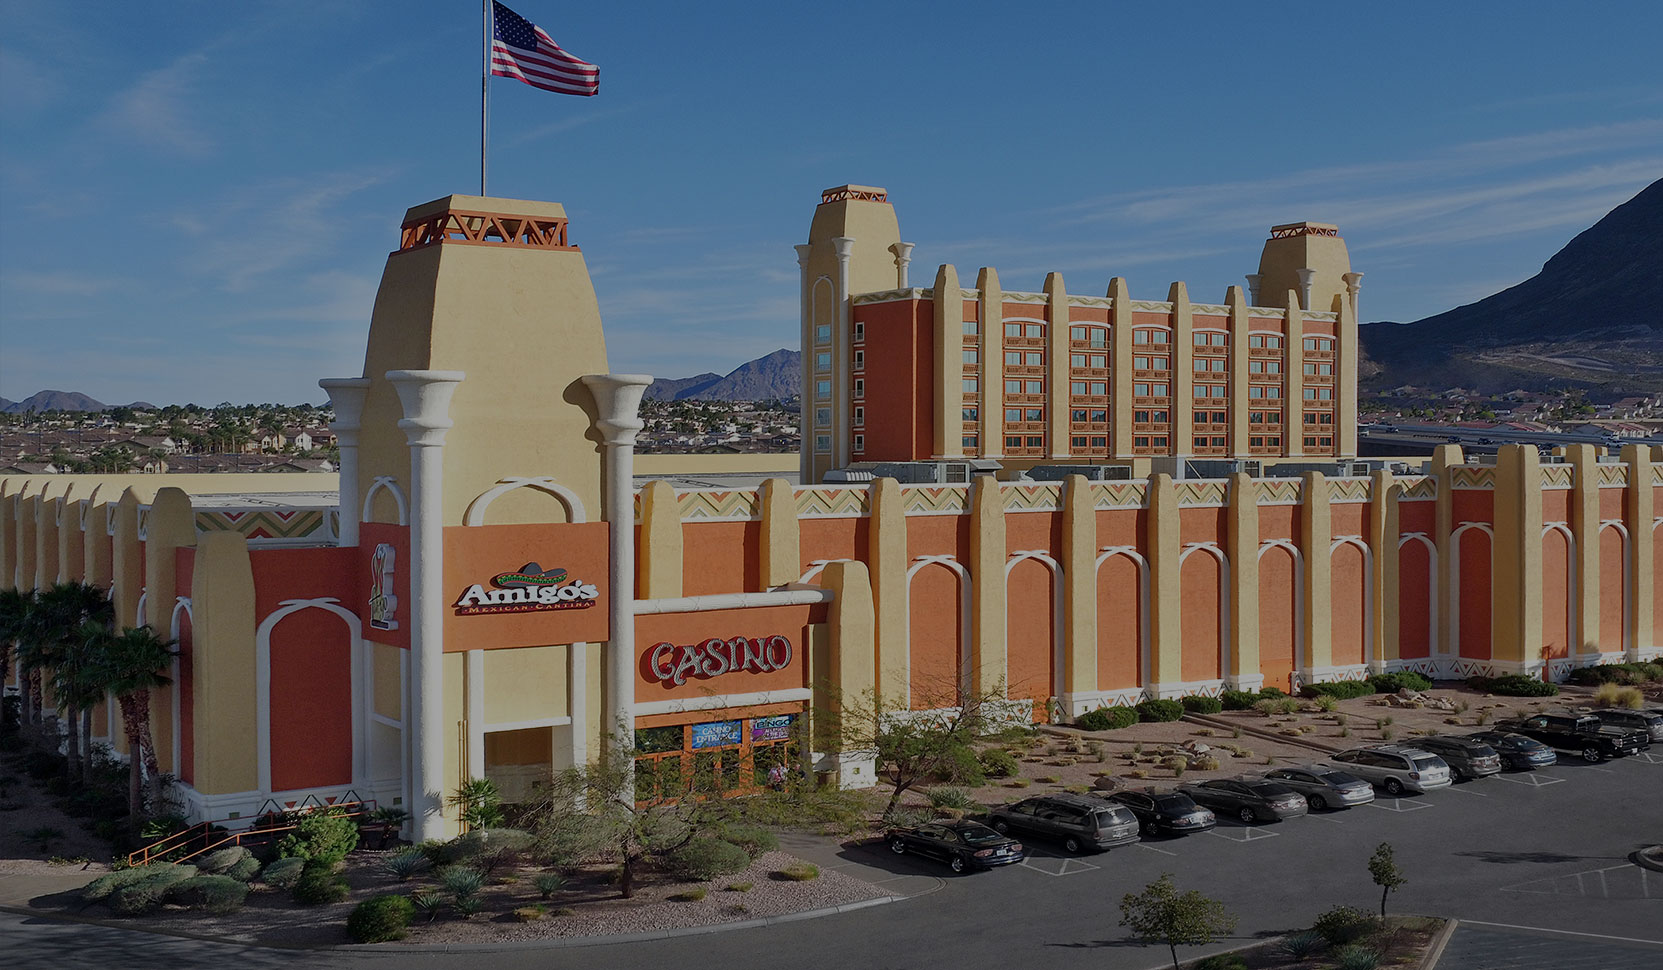 hotels in henderson, nv near hoover dam, lake mead & lake las